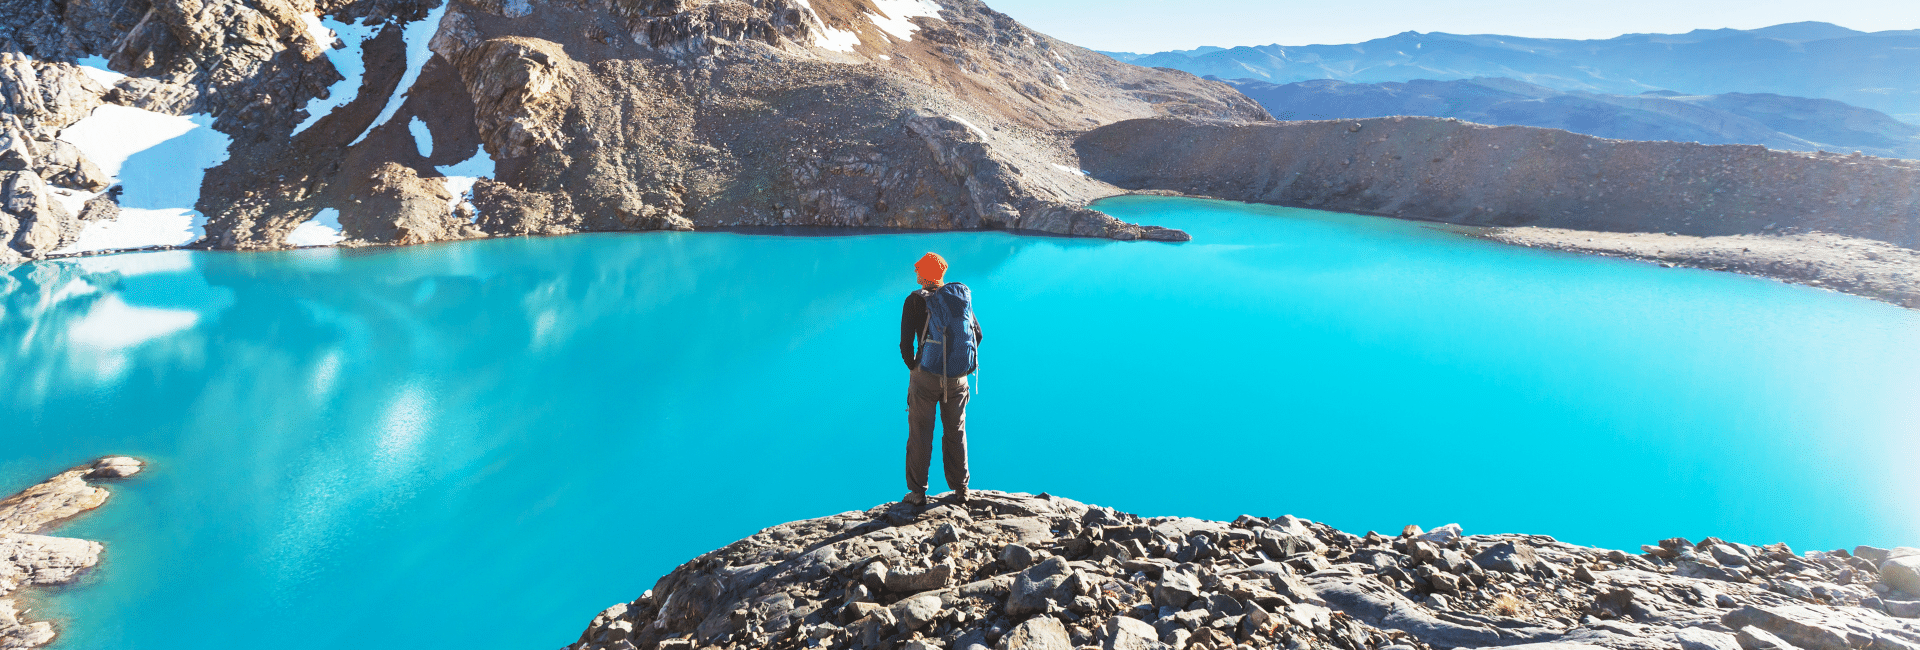 Hiker standing on a cliff overlooking a lake in Patagonia